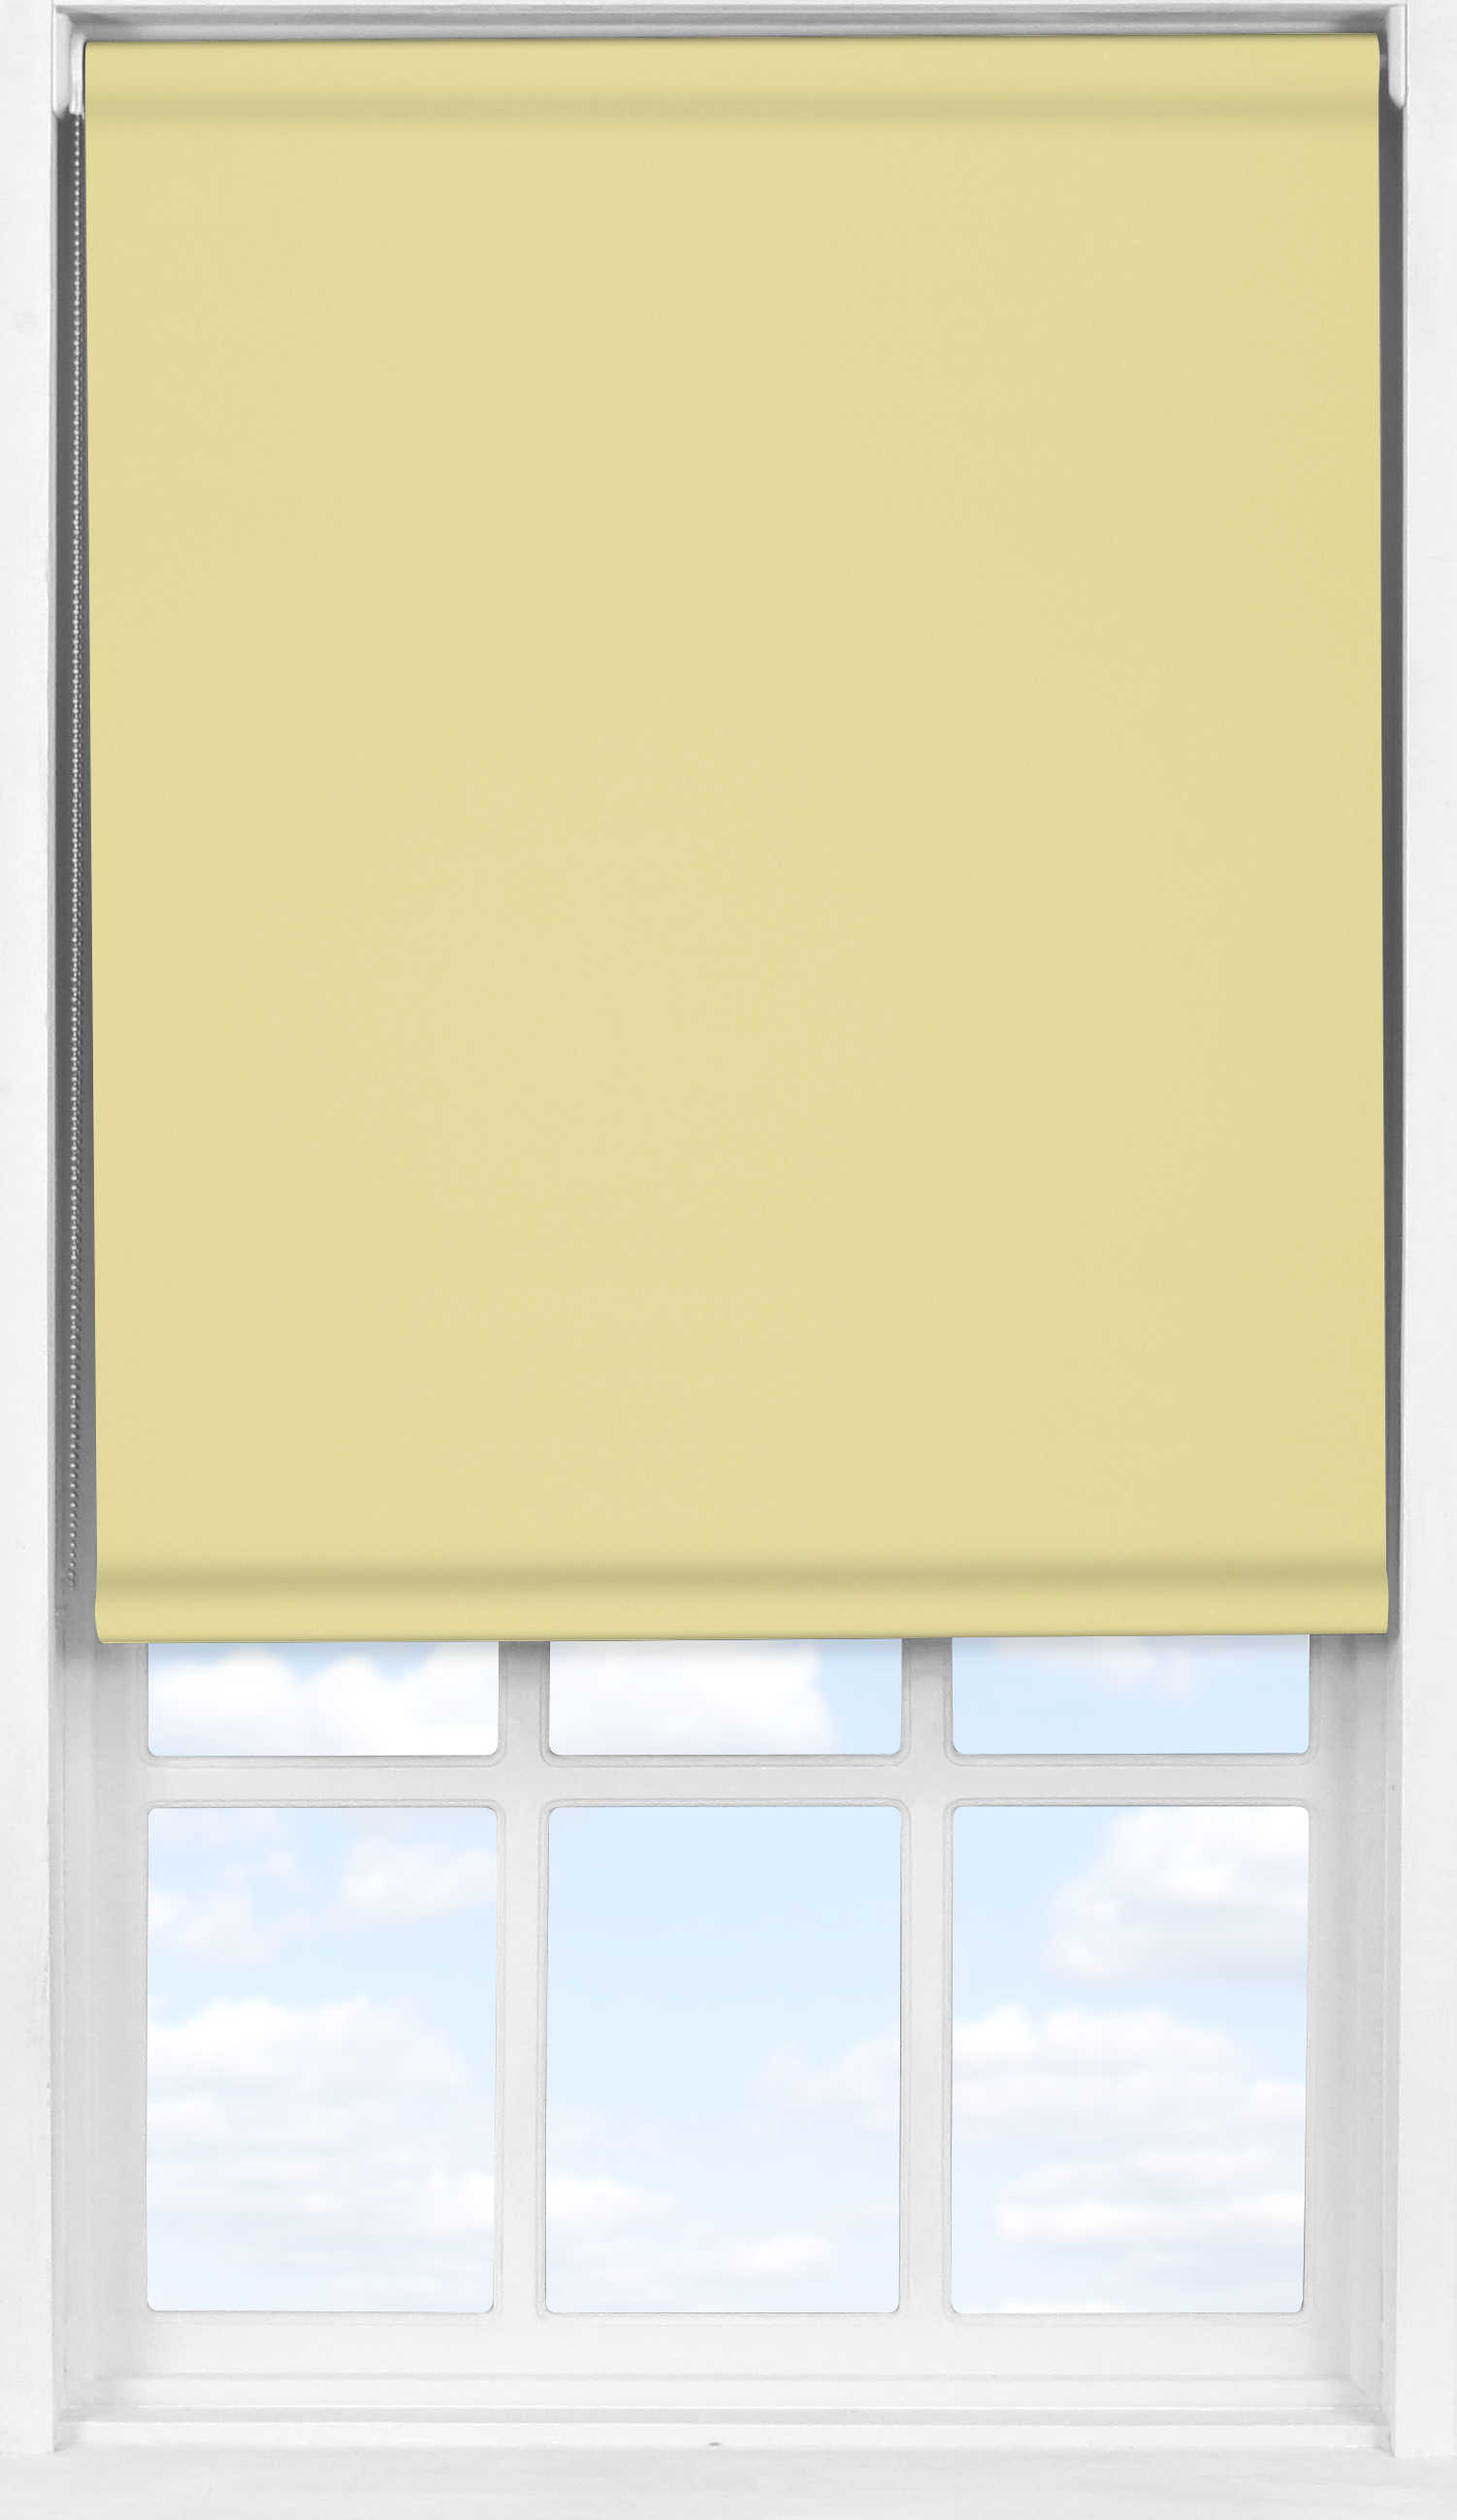 Easifit Roller Blind in Daffodil Yellow Translucent